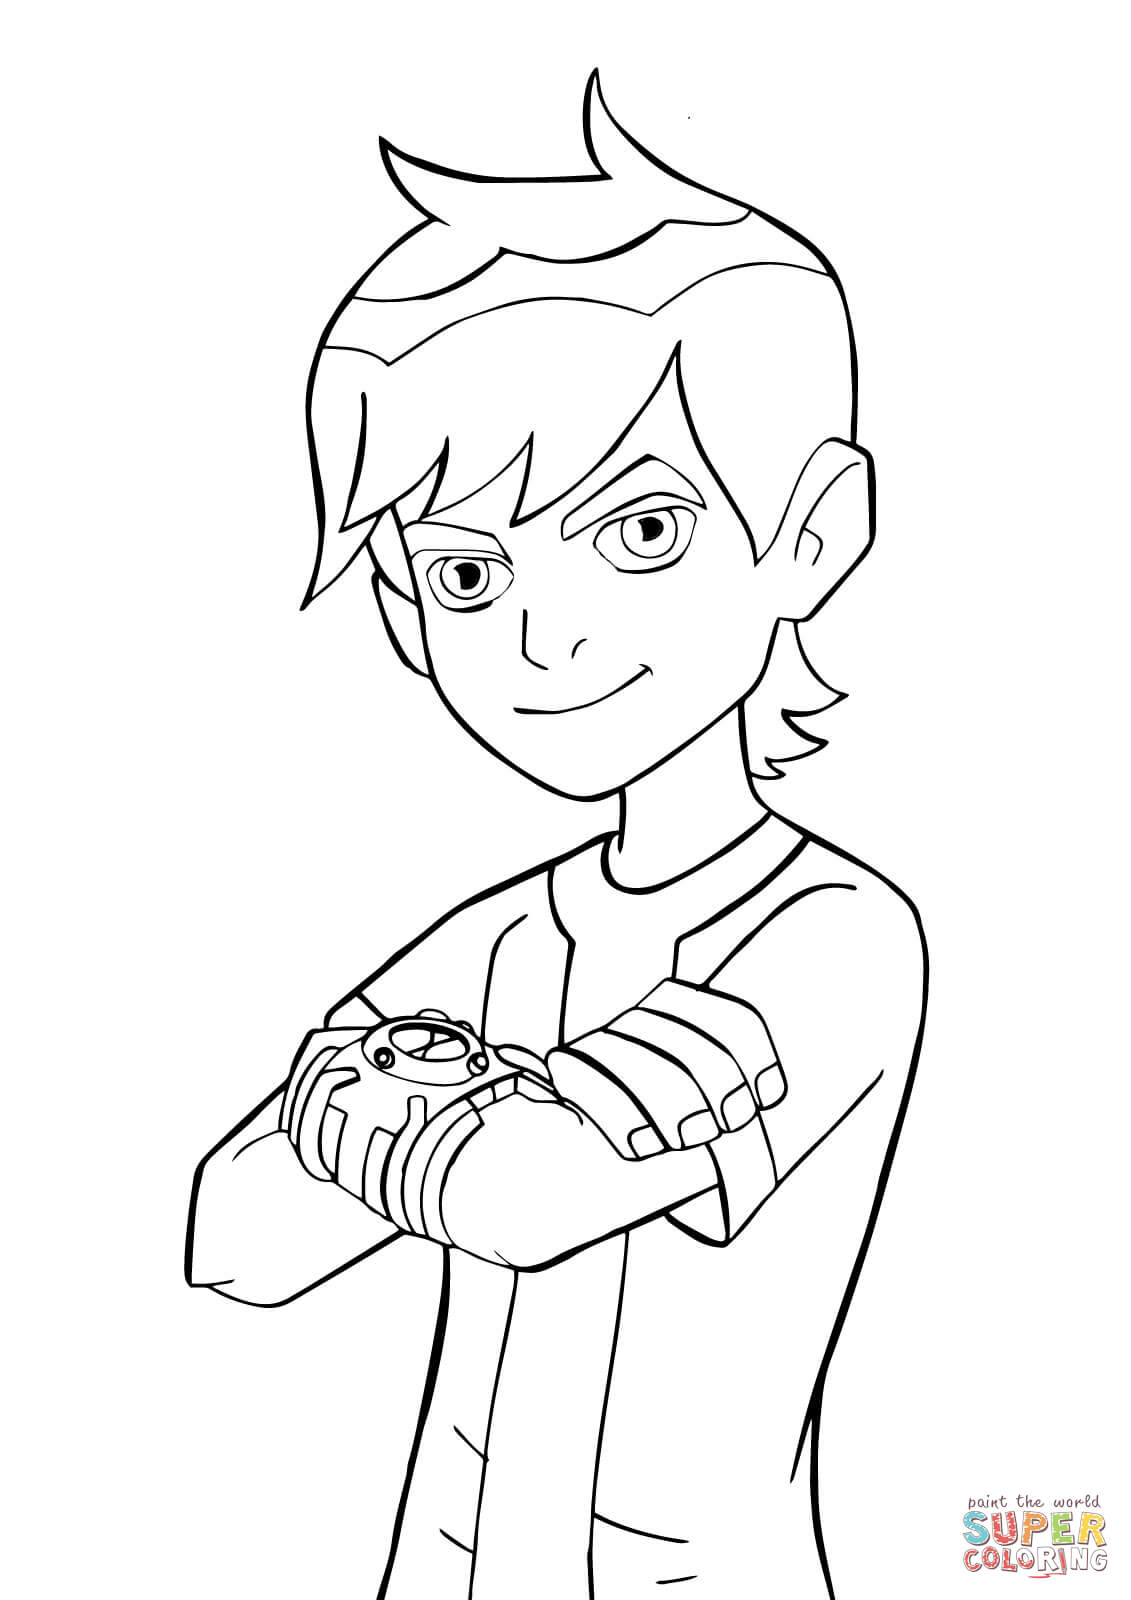 Ben 10 With Omnitrix From Ben 10 Coloring Page